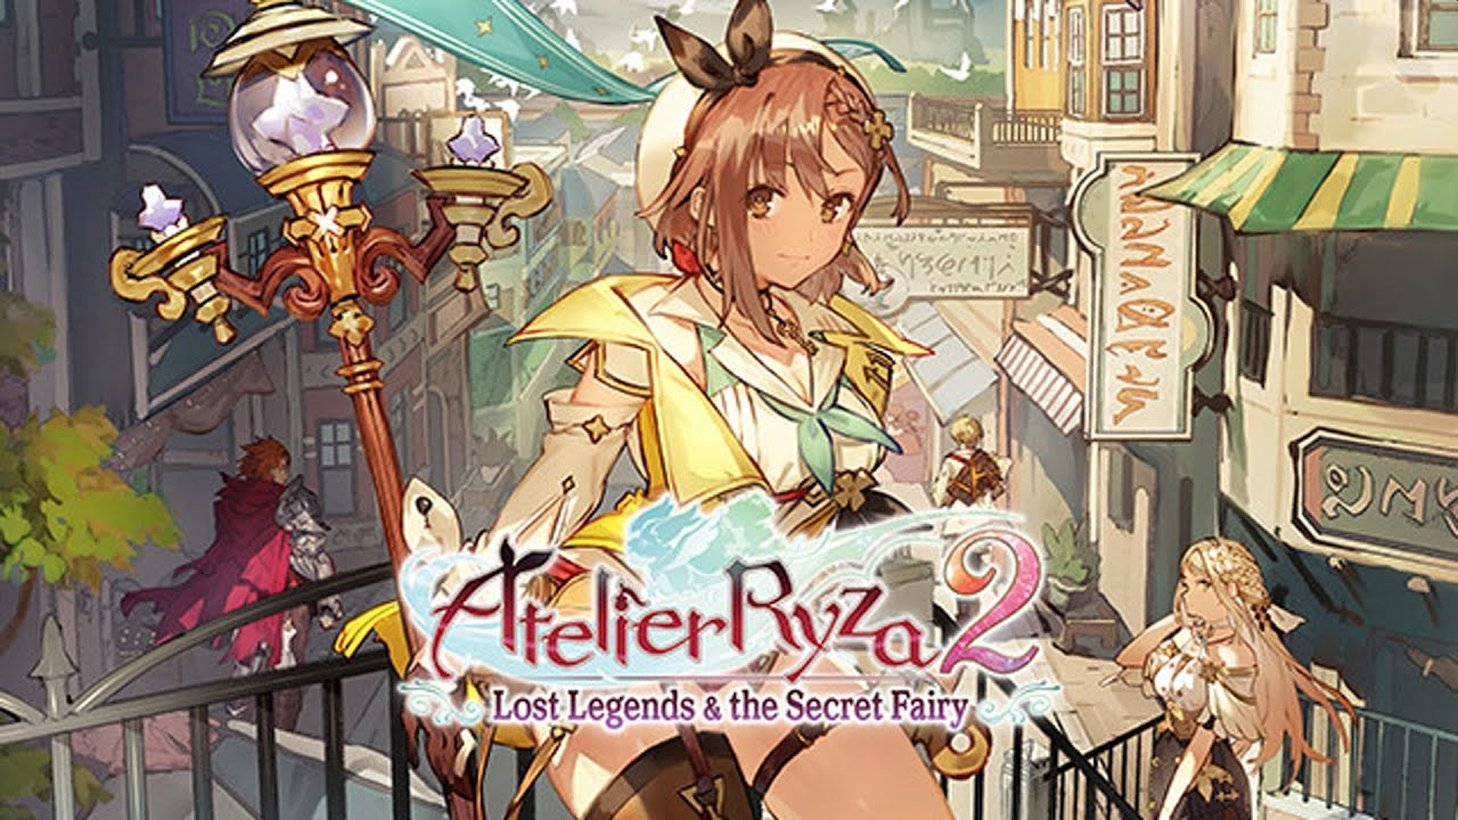 Koei Tecmo Announces Atelier Ryza 2 Digital Deluxe And Ultimate Edition Details